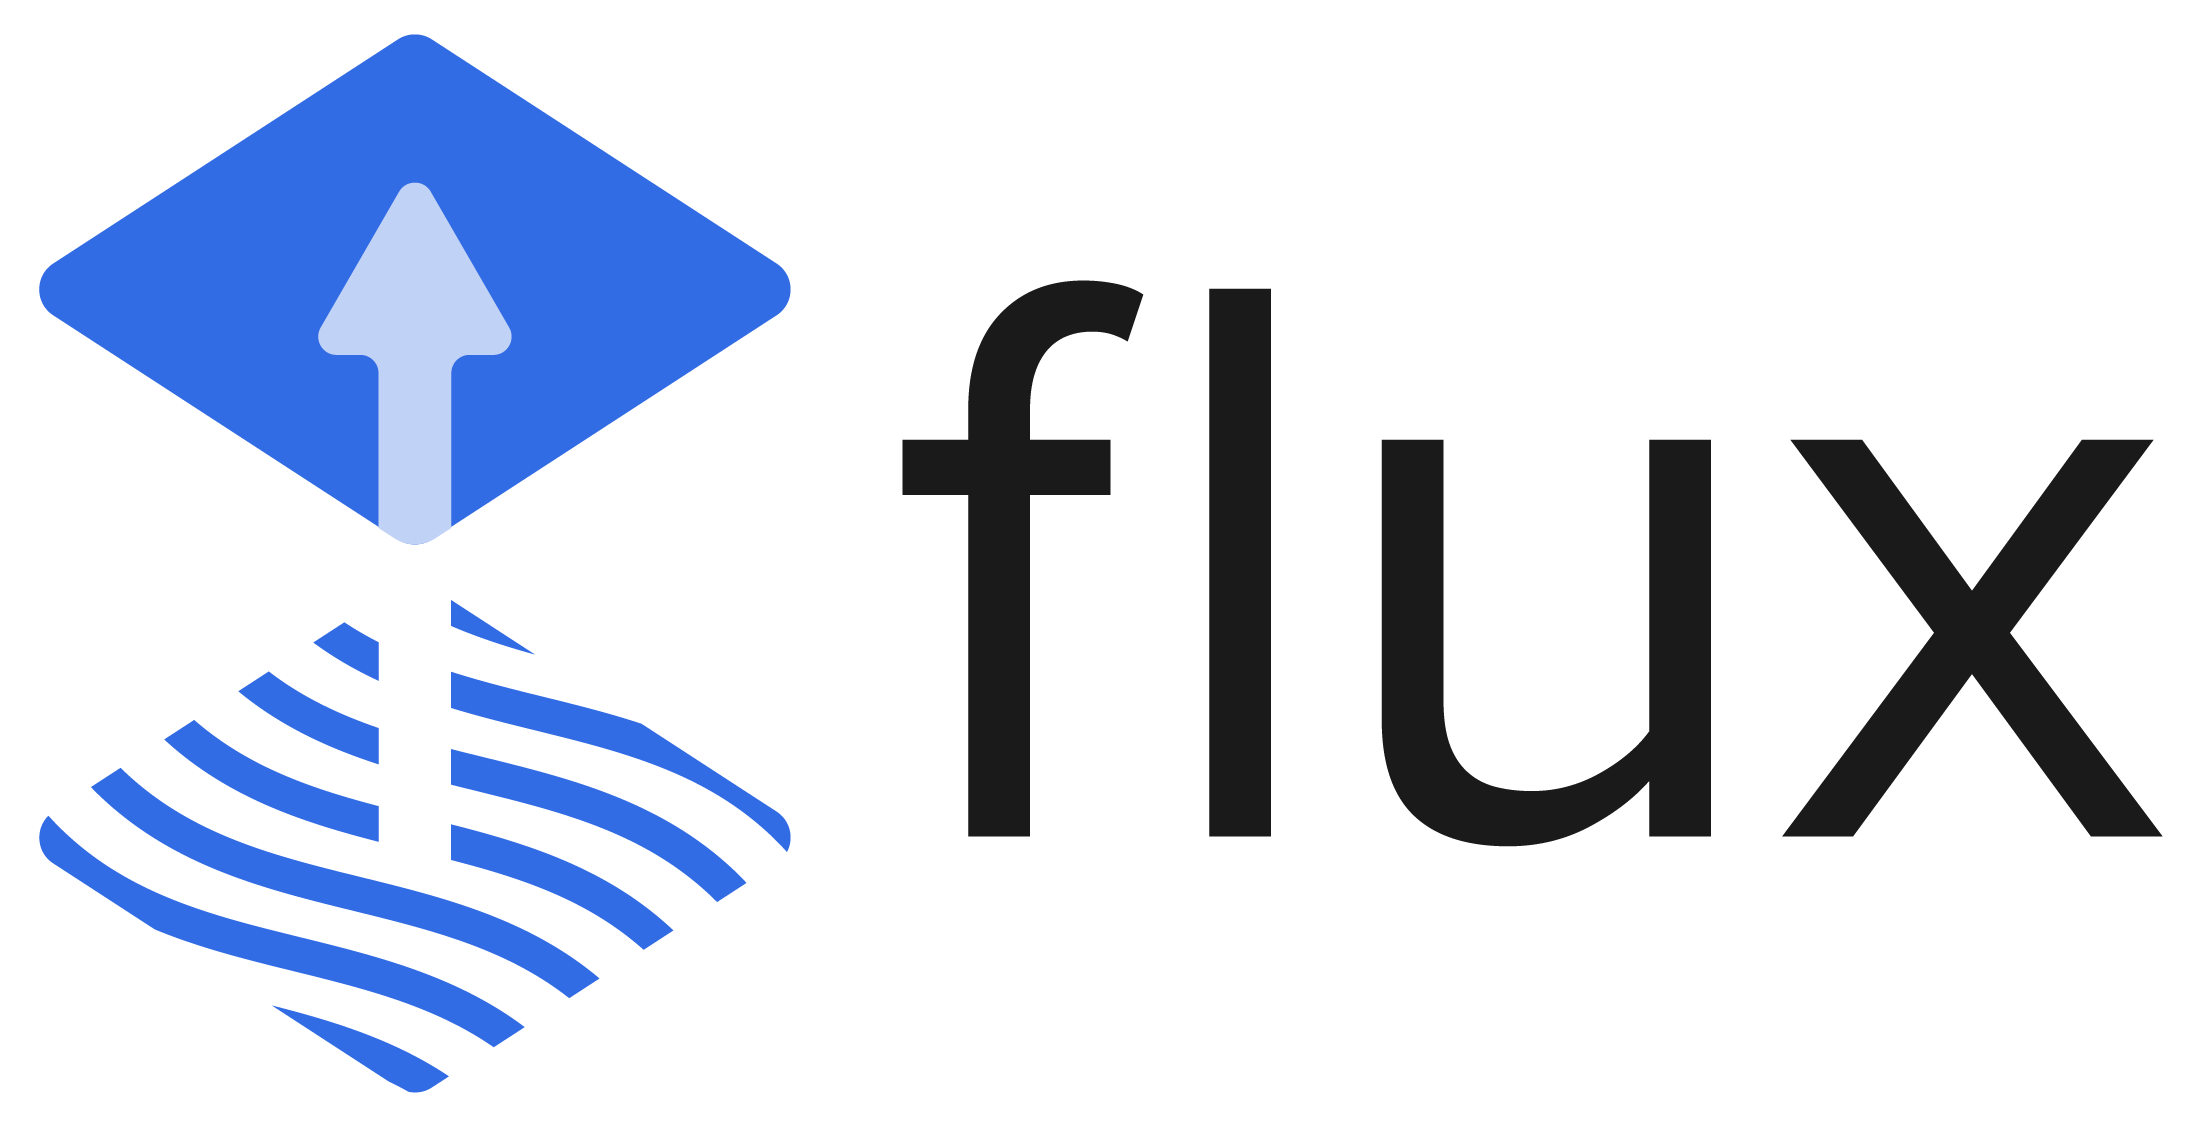 Flux CD hero logo